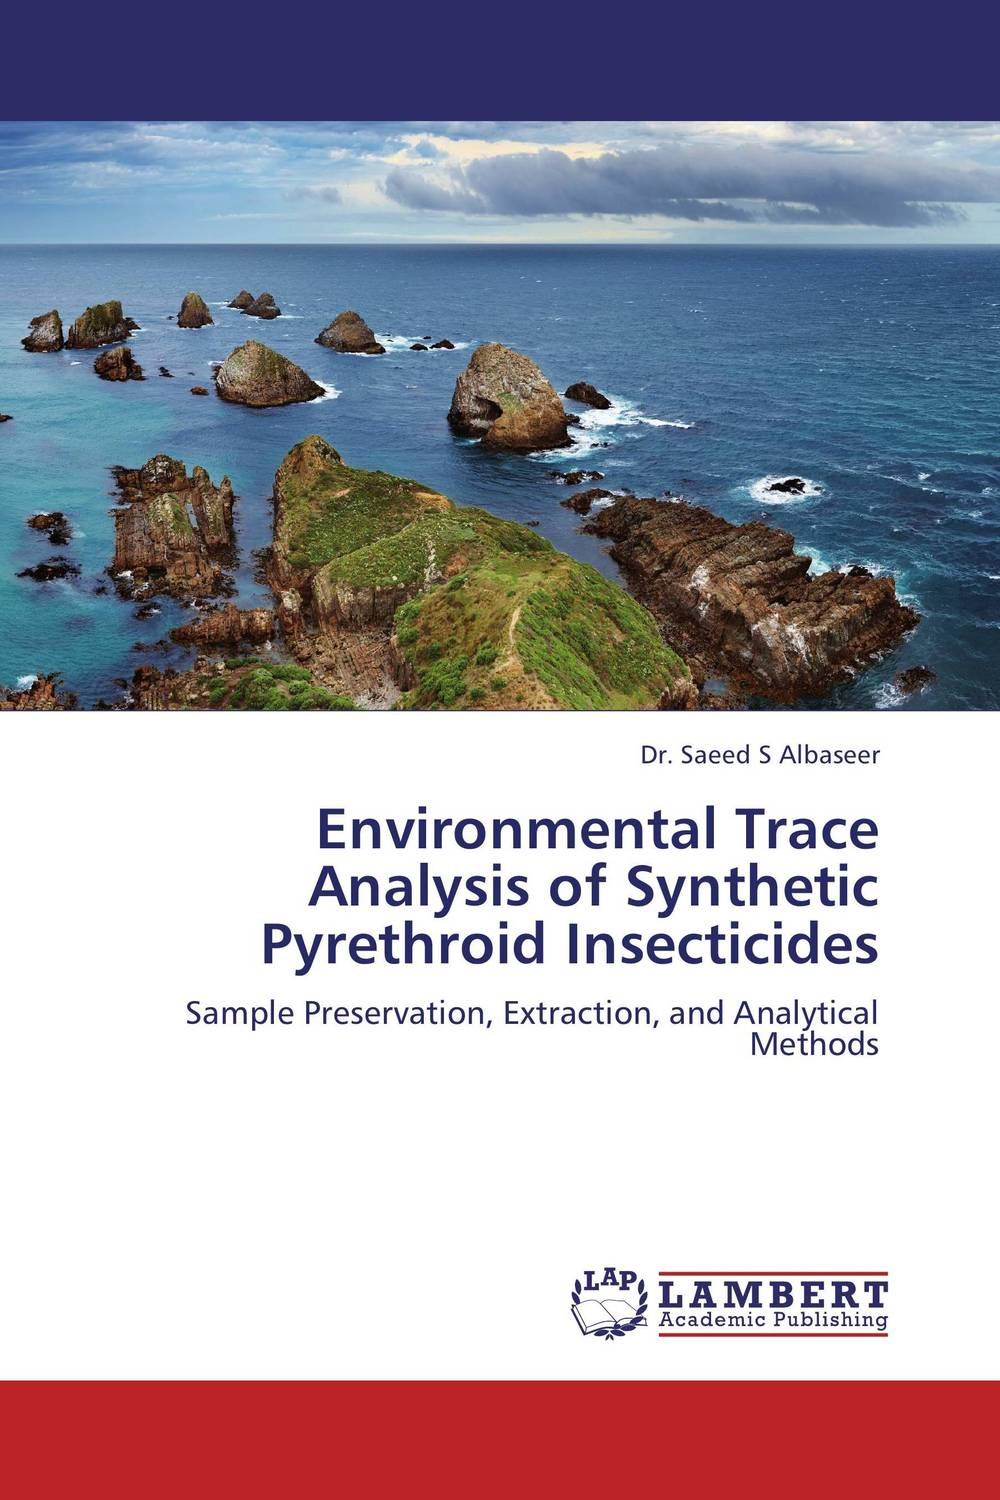 Environmental Trace Analysis of Synthetic Pyrethroid Insecticides analysis of pharmaceuticals in wastewater and their photodegradation